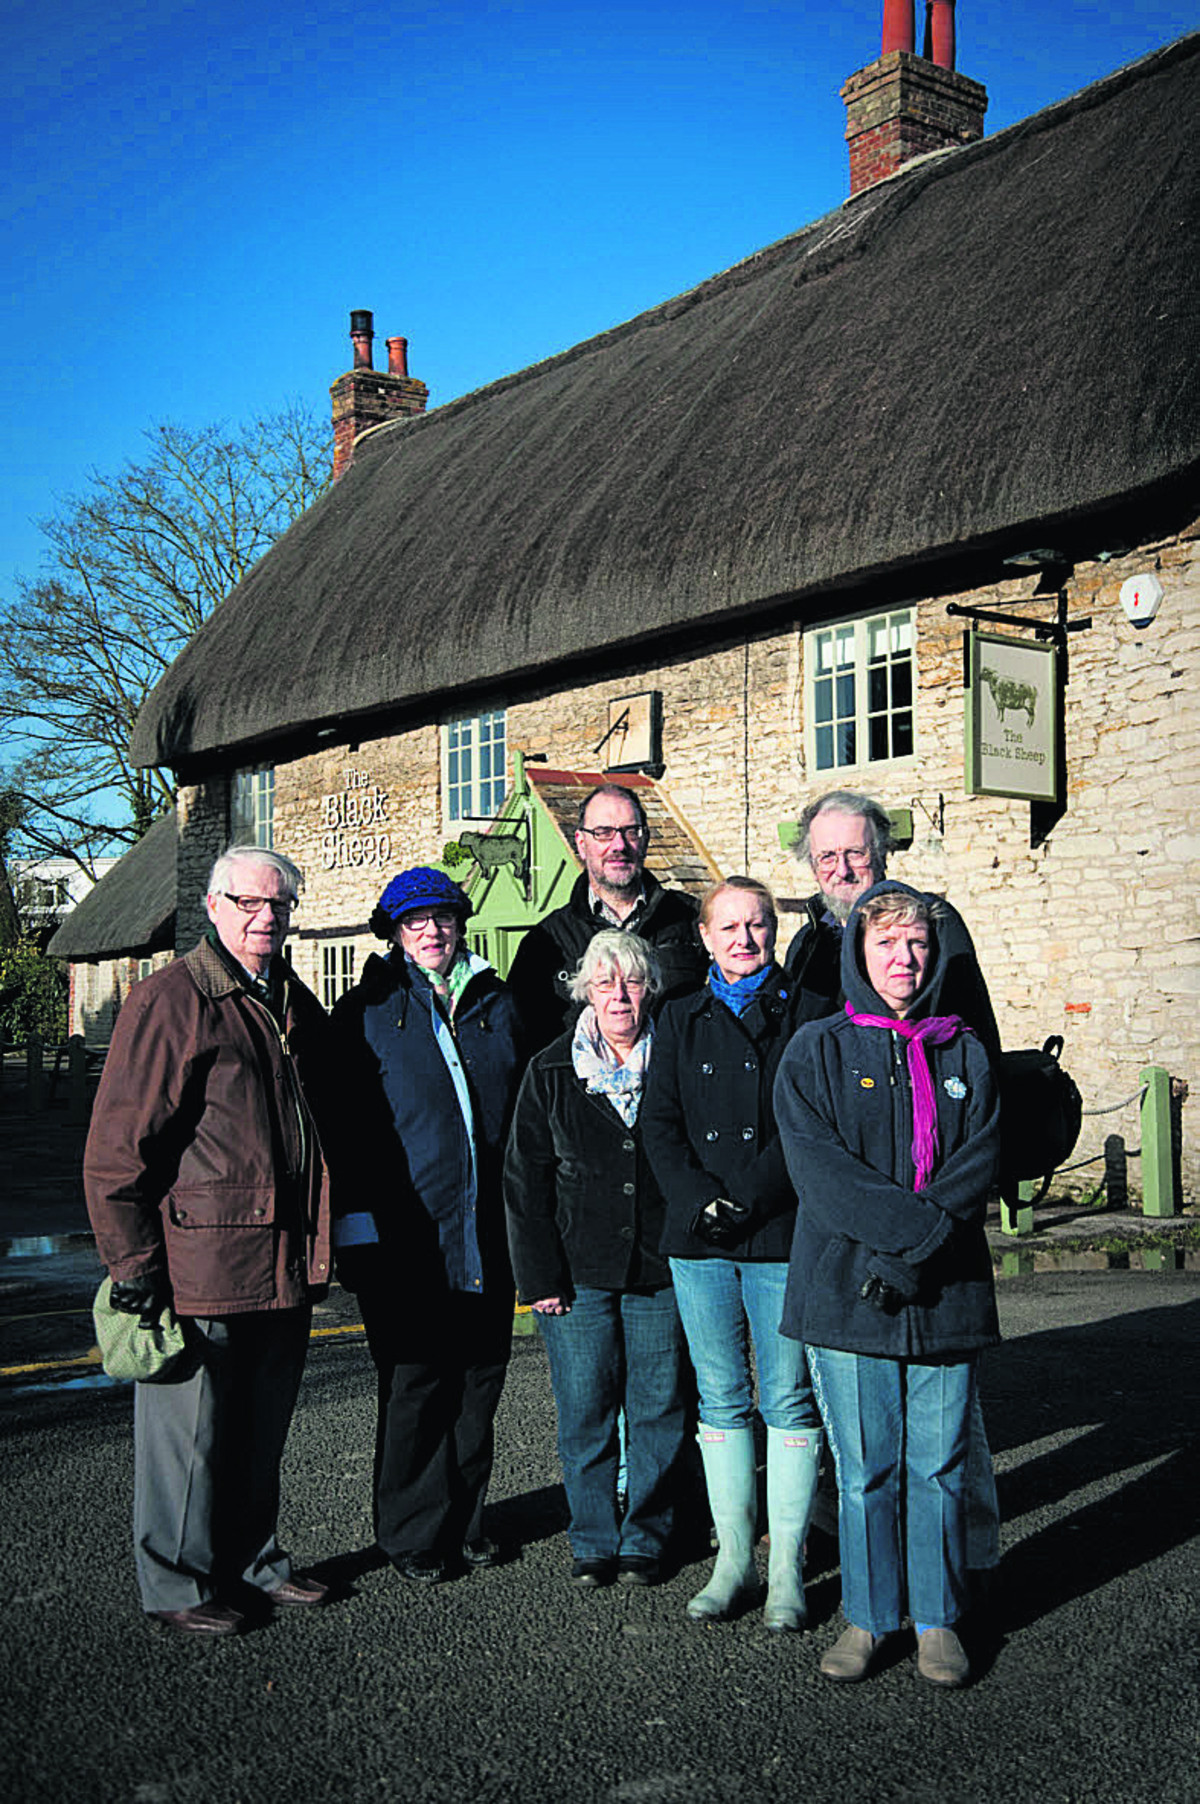 Outcry as Ben Jonson pub becomes the Black Sheep